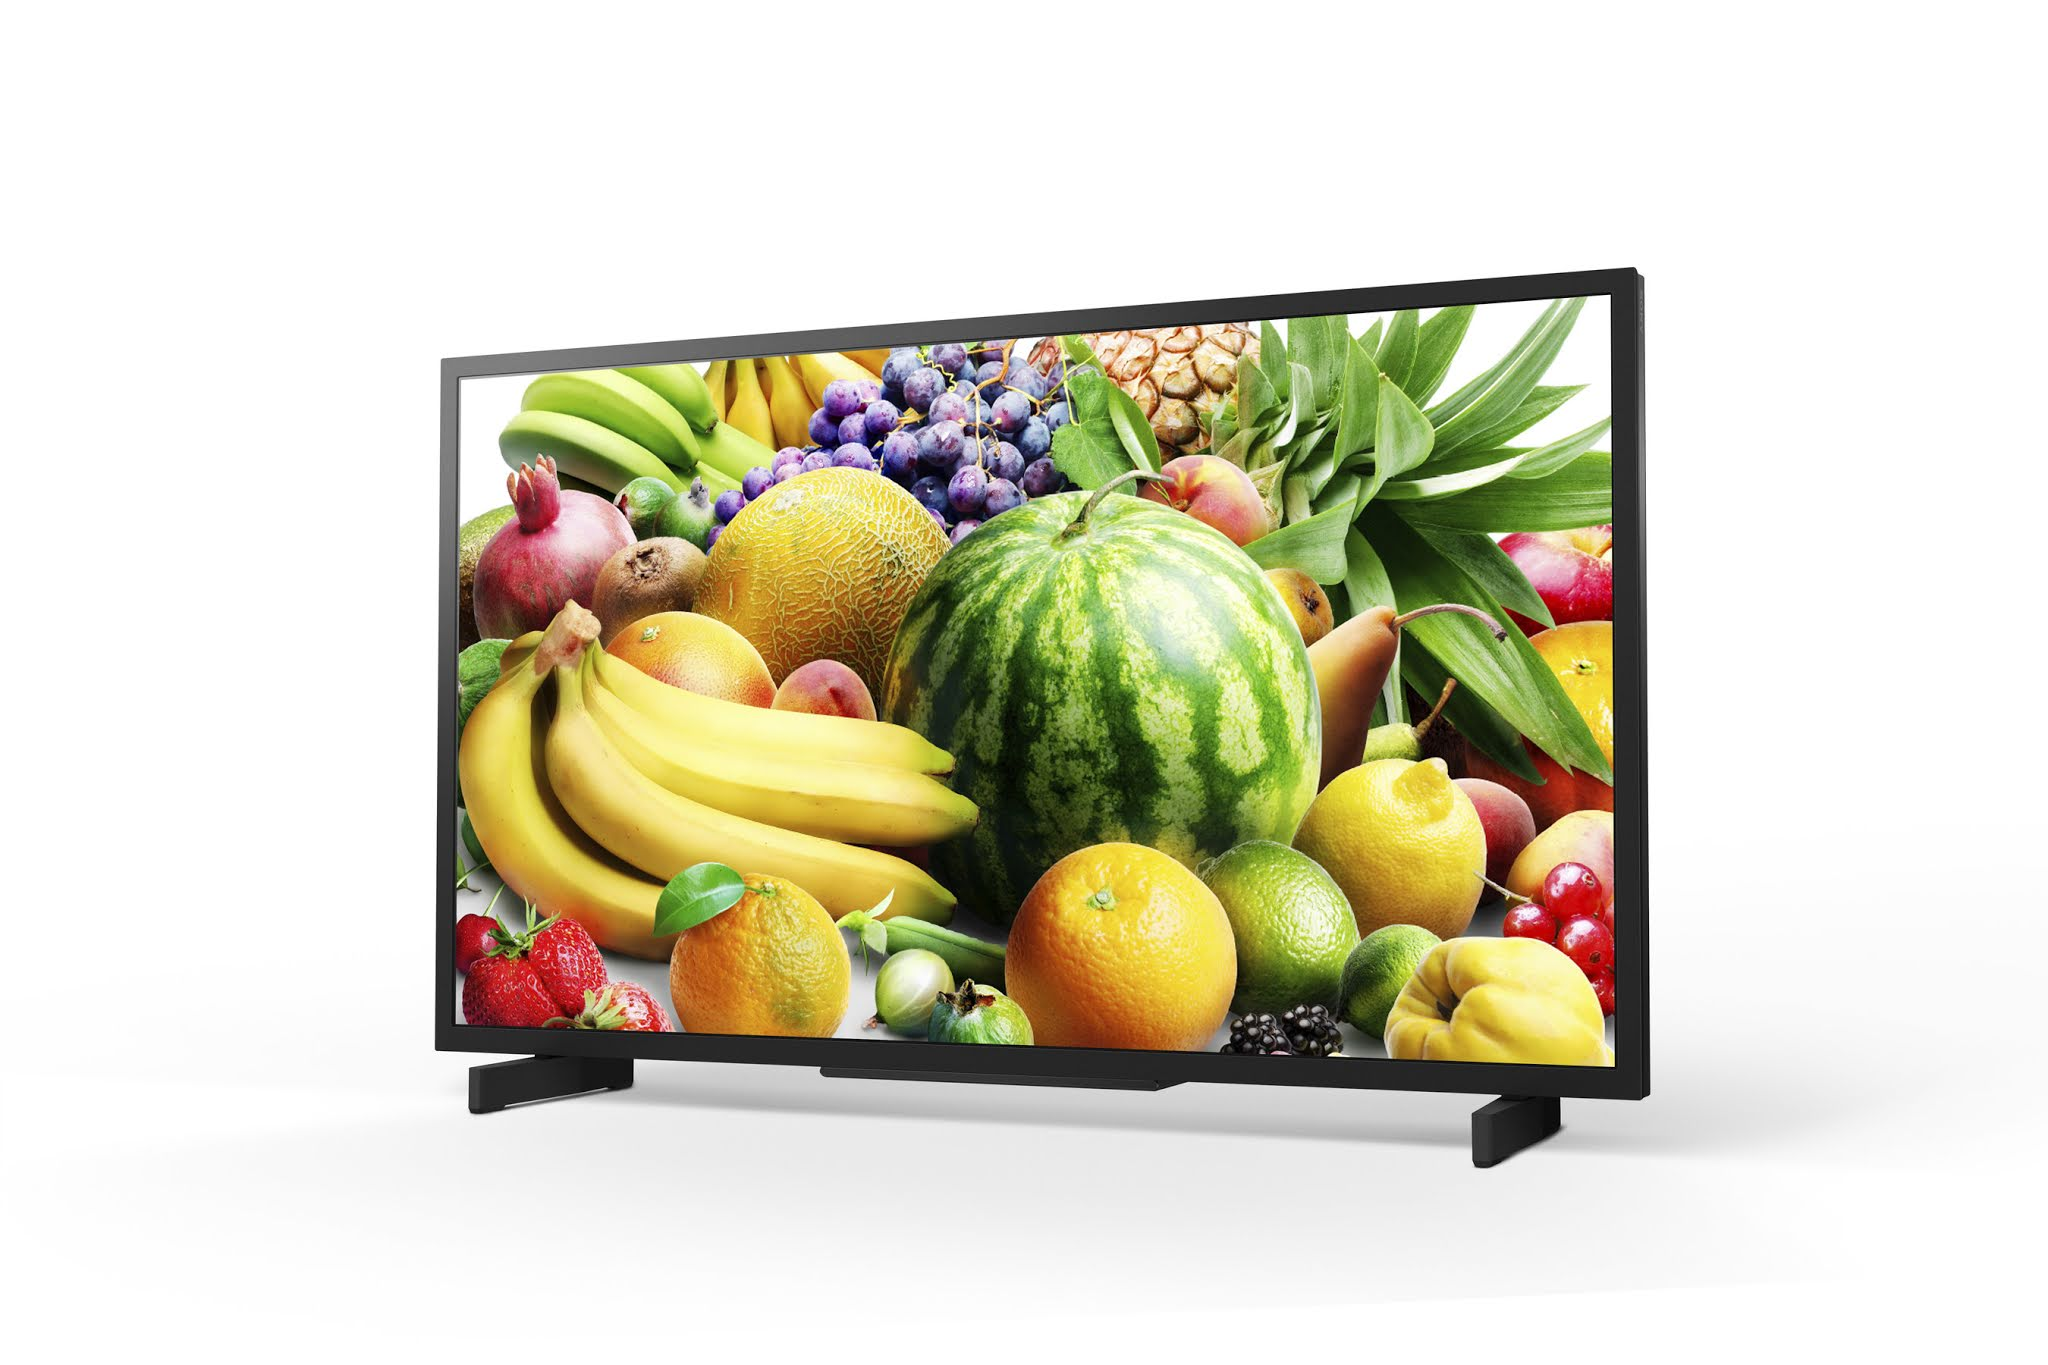 Sony Expands Its BRAVIA 4K HDR Professional Display Lineup with 100-inch and 32-inch Options for Business Applications